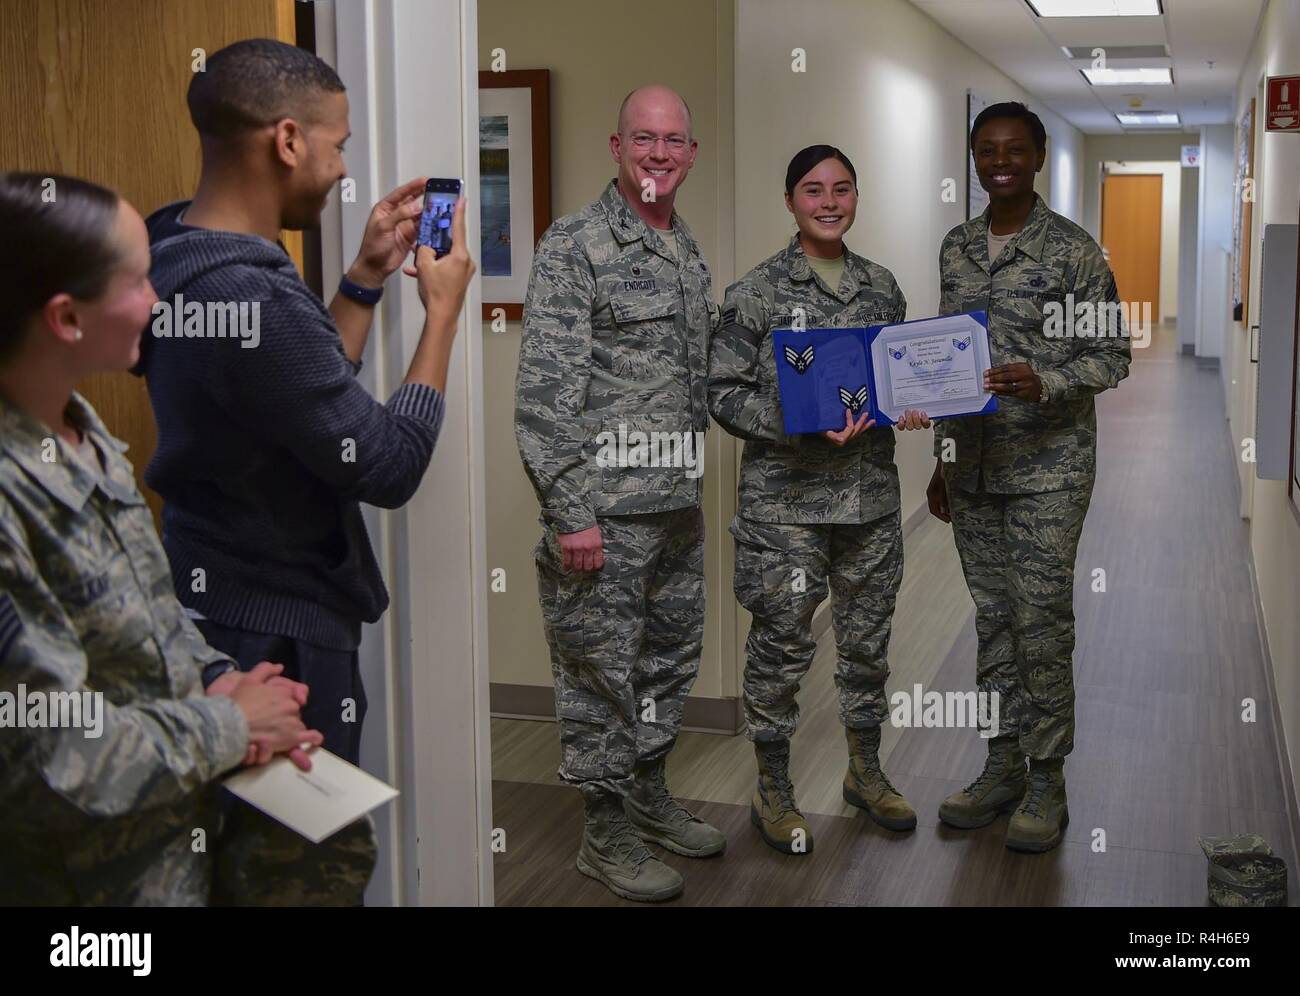 460th Medical Group High Resolution Stock Photography And Images Alamy